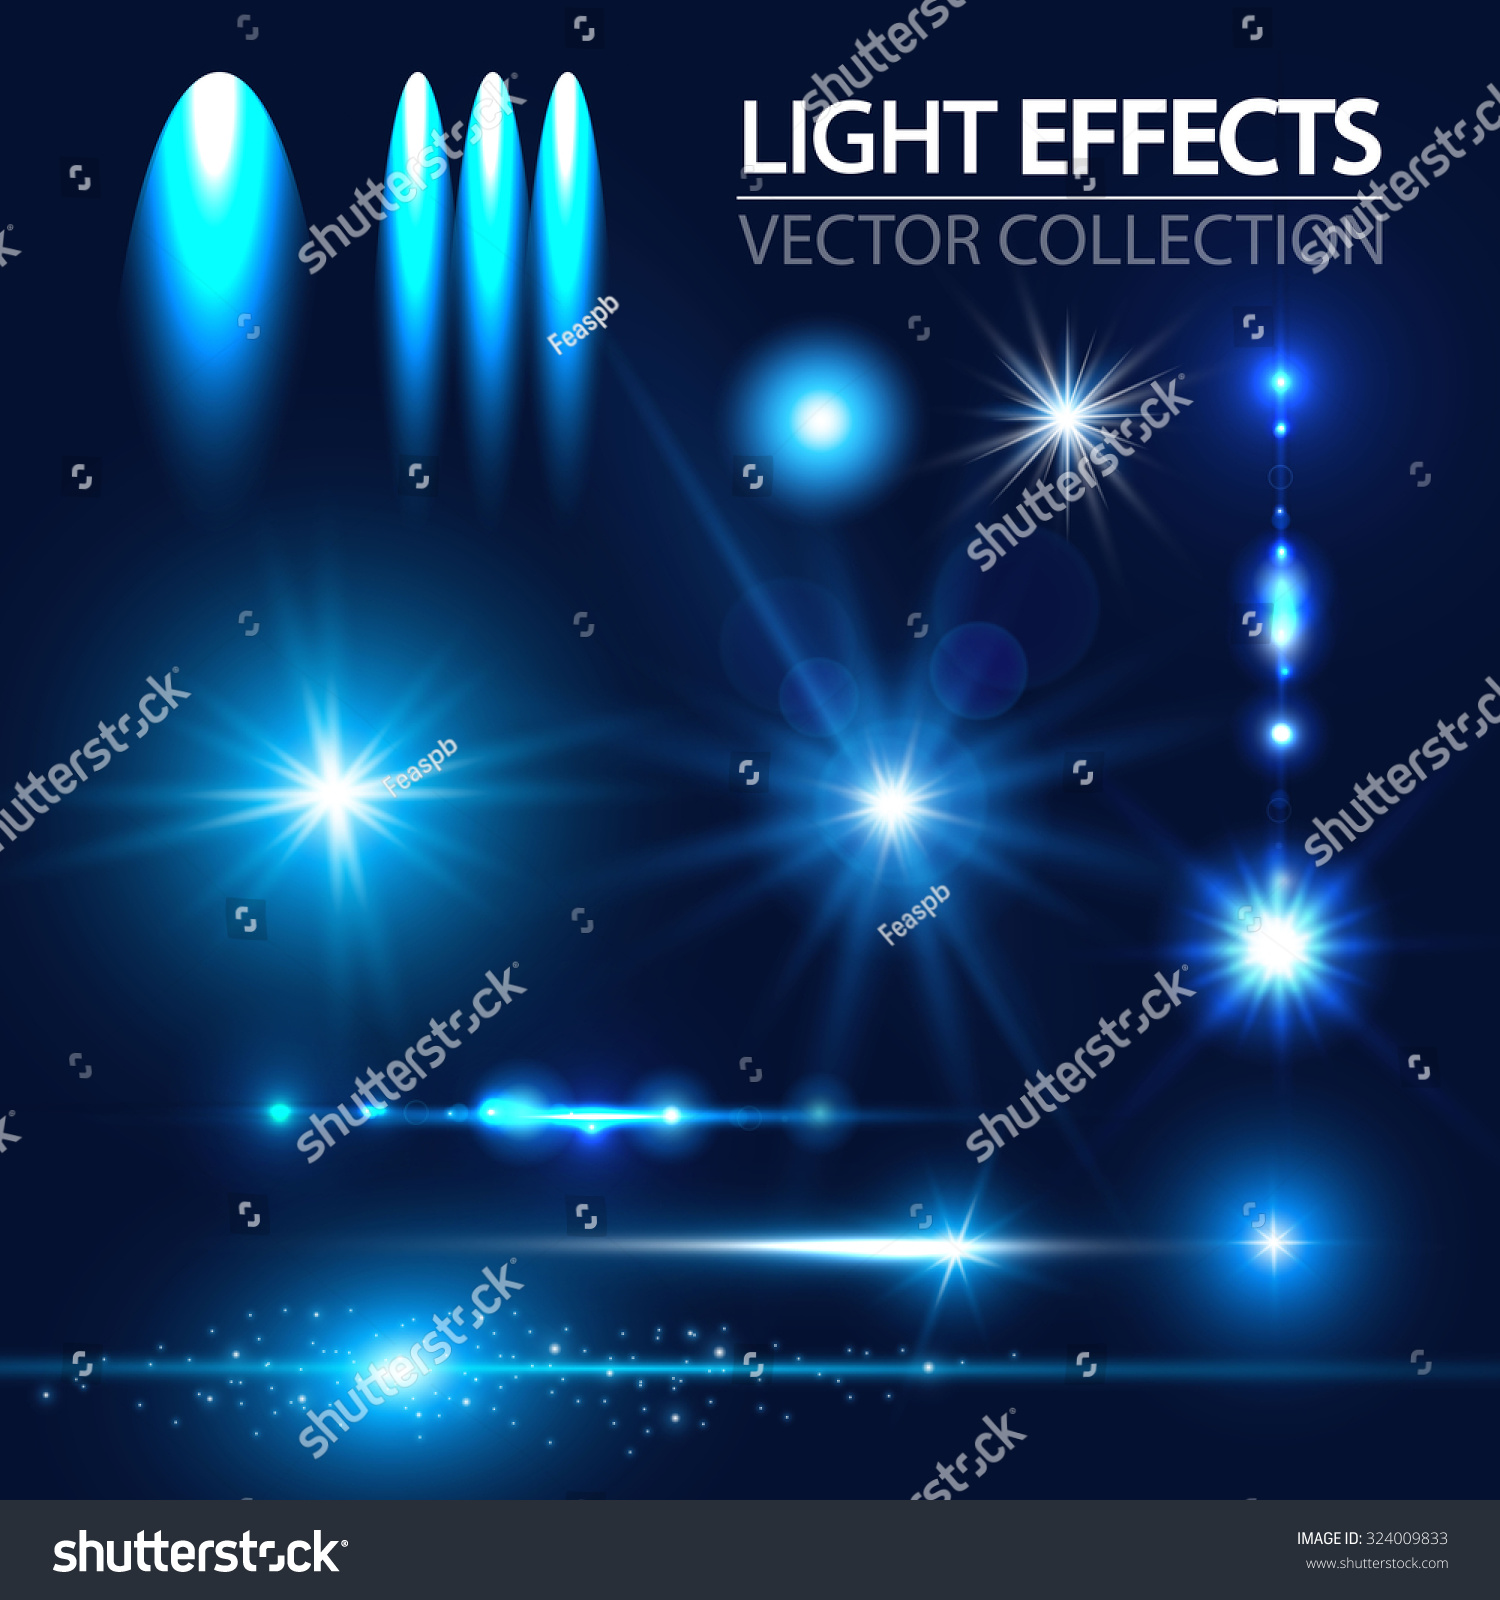 Light Effects Collection Vector Illustration Stock Vector 324009833 ...